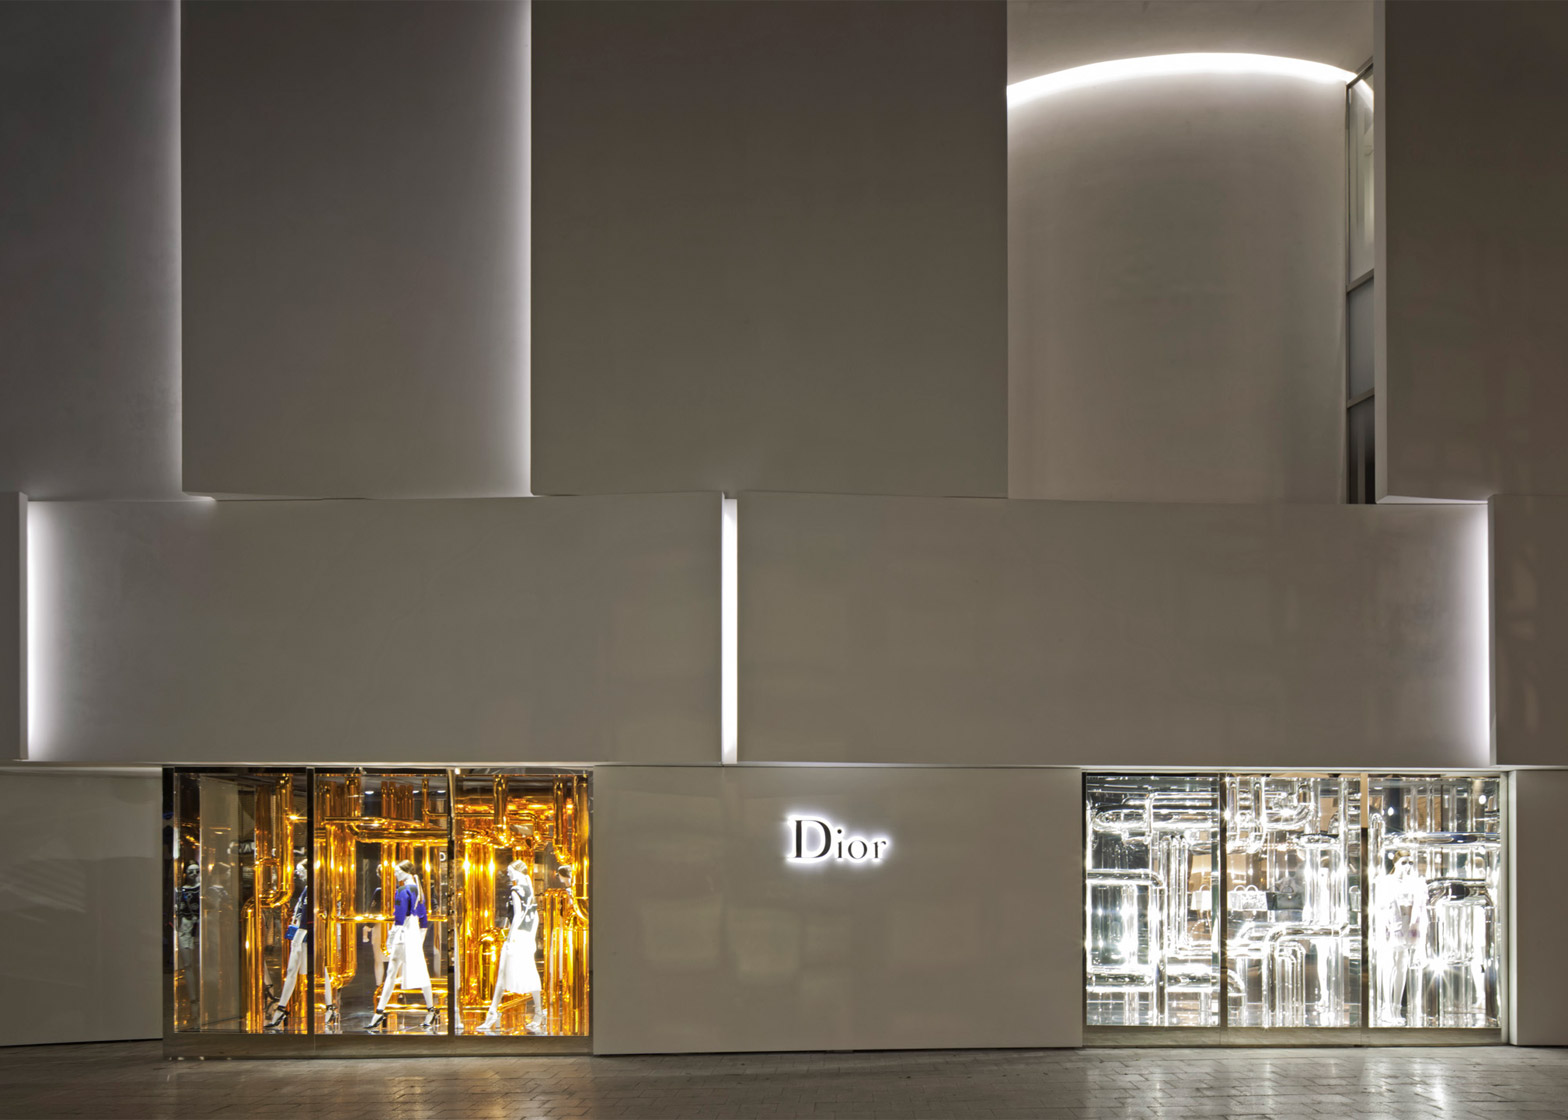 Dior shop in Miami by Barbarito Bancel